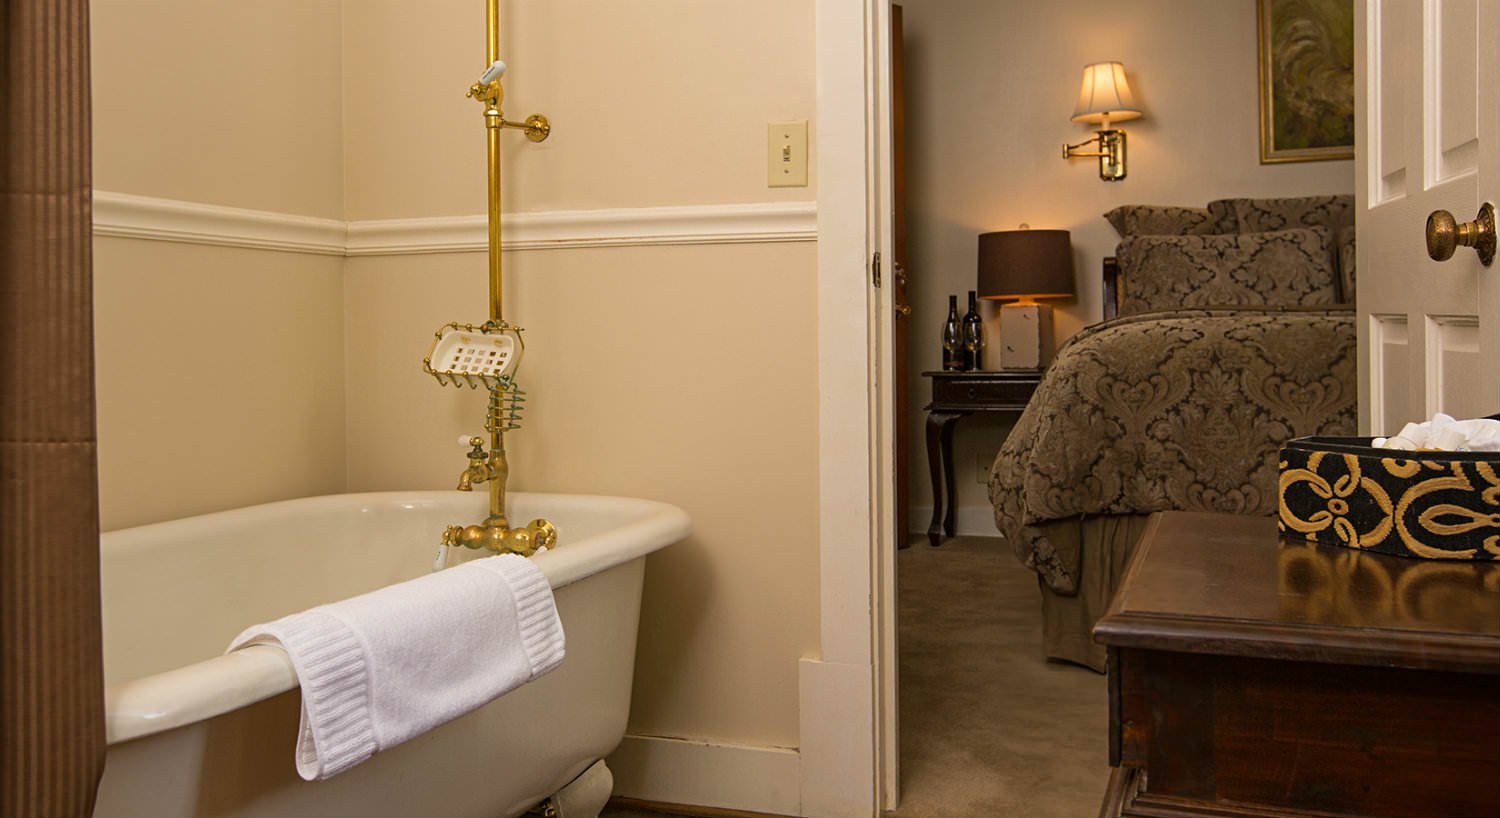 Clawfoot tub with brass faucet, ivory walls, bed in the background with brown and black comforter and dimly lit sconce